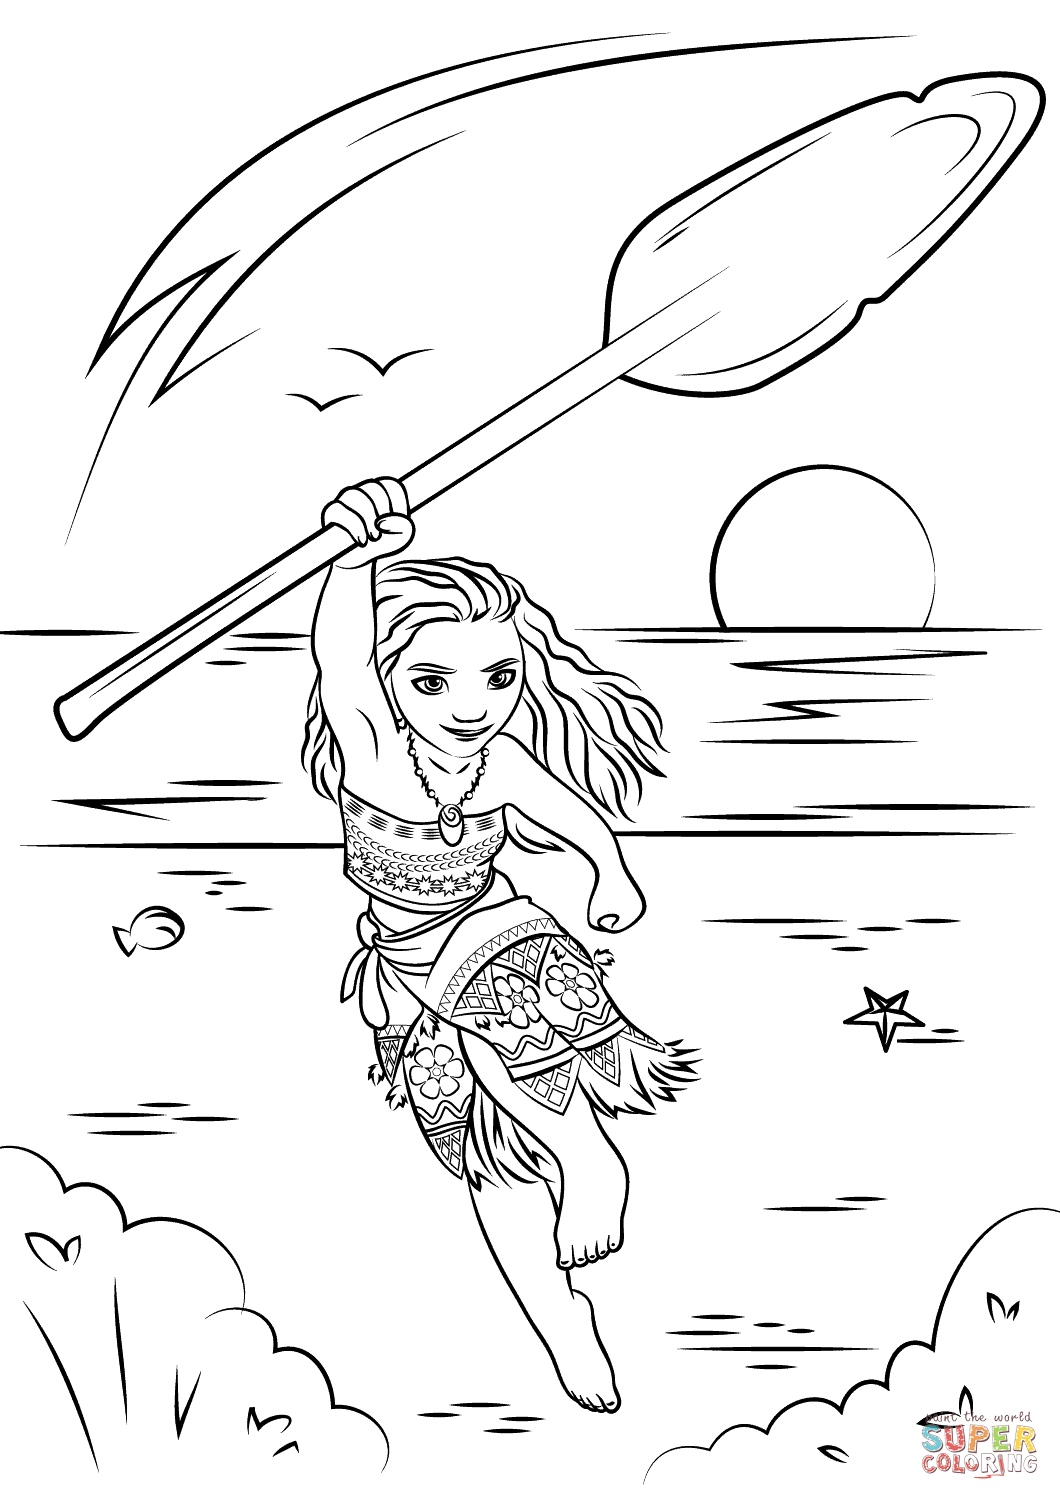 cute moana coloring pages moana from moana coloring page free coloring pages online pages moana coloring cute